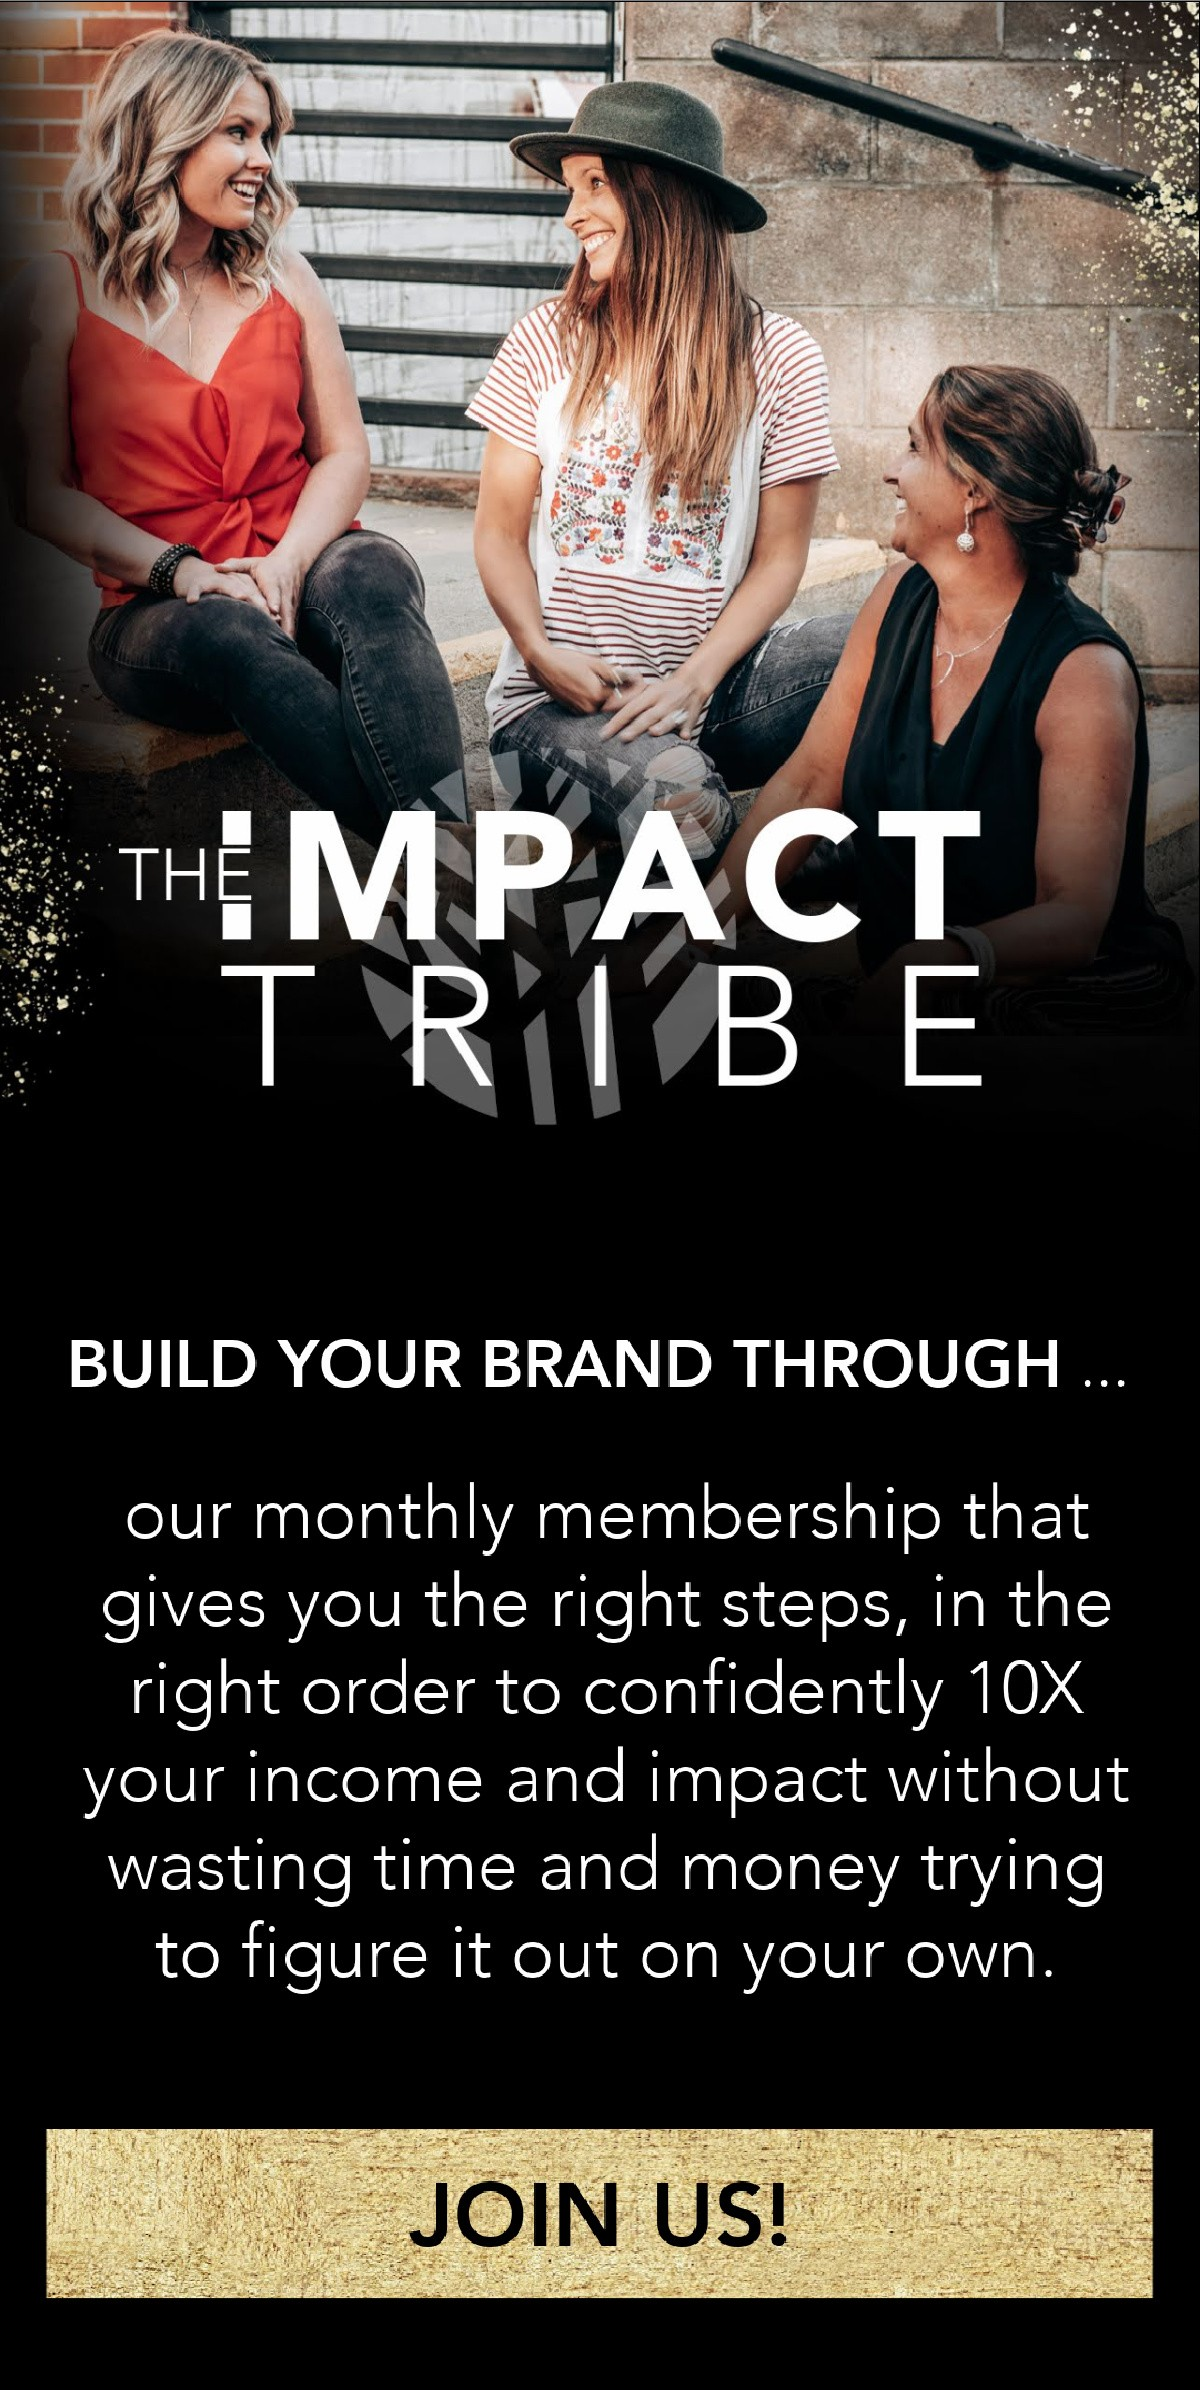 The Impact Tribe